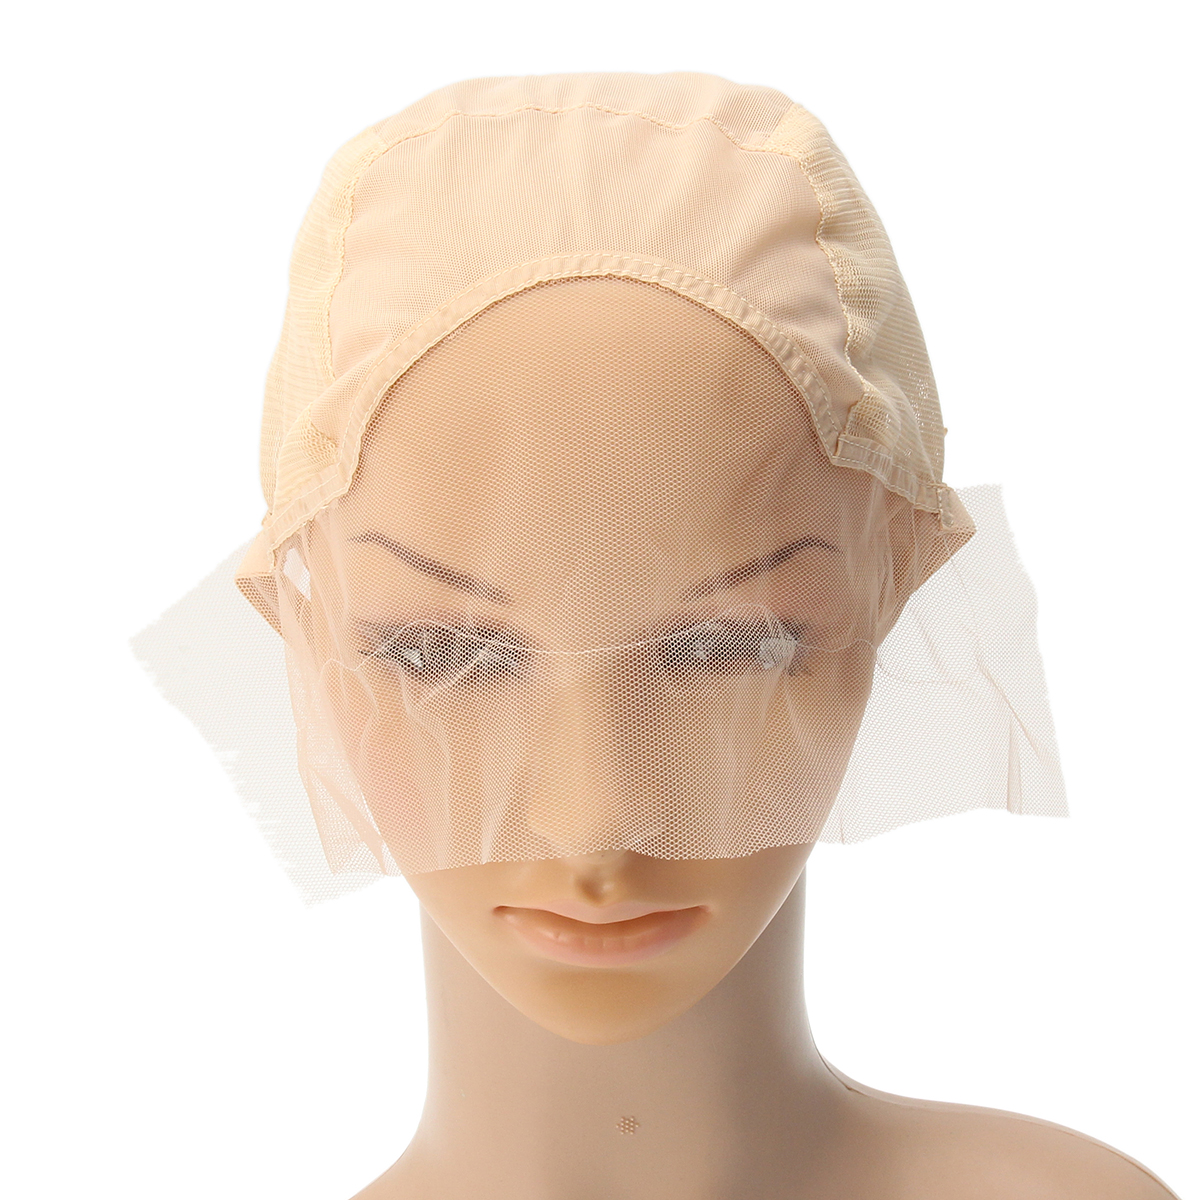 Wig Cap For Wig Making Weave Cap Elastic Hair Net Mesh Adjustable